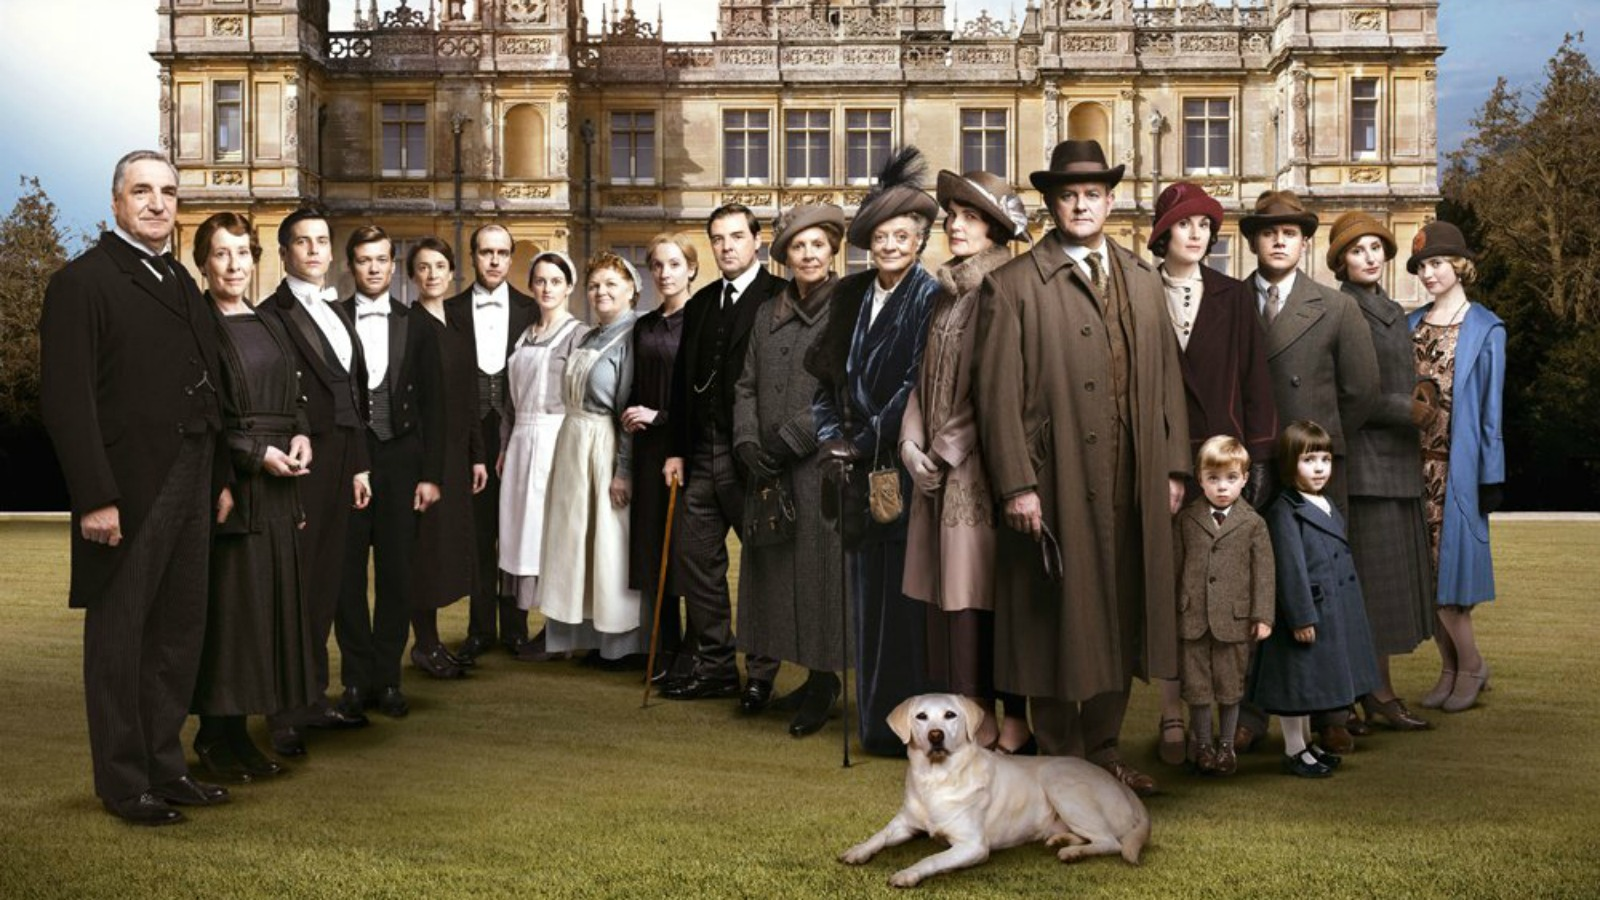 A-Downton-Abbey-Movie-Is-Coming-and-Joanne-Froggatt-and-Michelle-Dockery-Are-Beyond-Excited-About-It